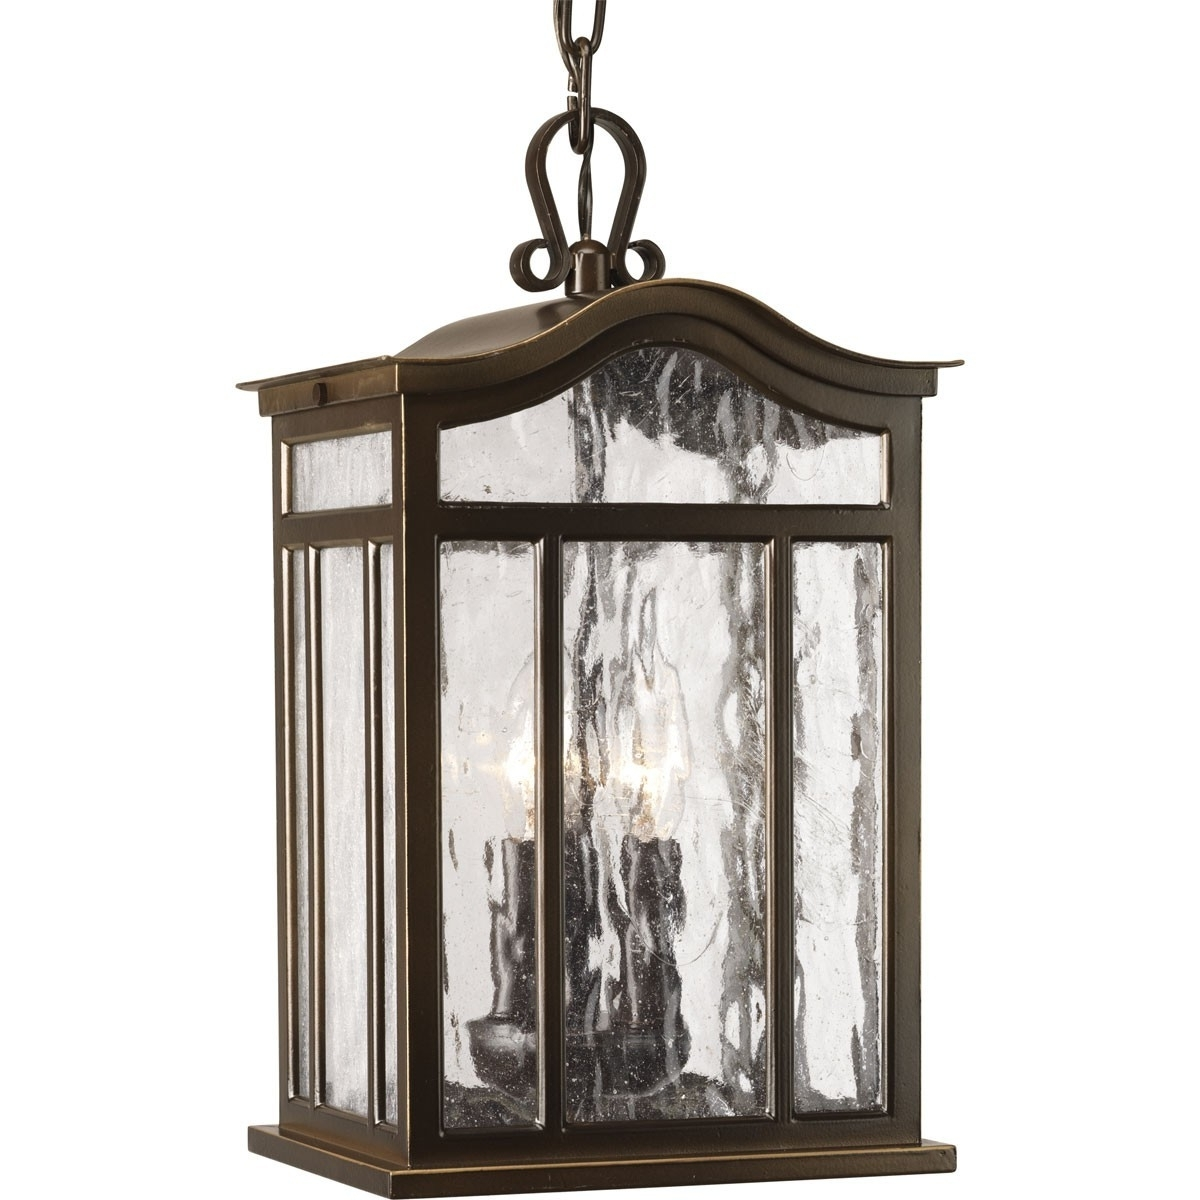 Outdoor Hanging Lanterns From Australia In Most Up To Date Lamp: Casual European Style Three Light Outdoor Hanging Lantern (View 6 of 20)